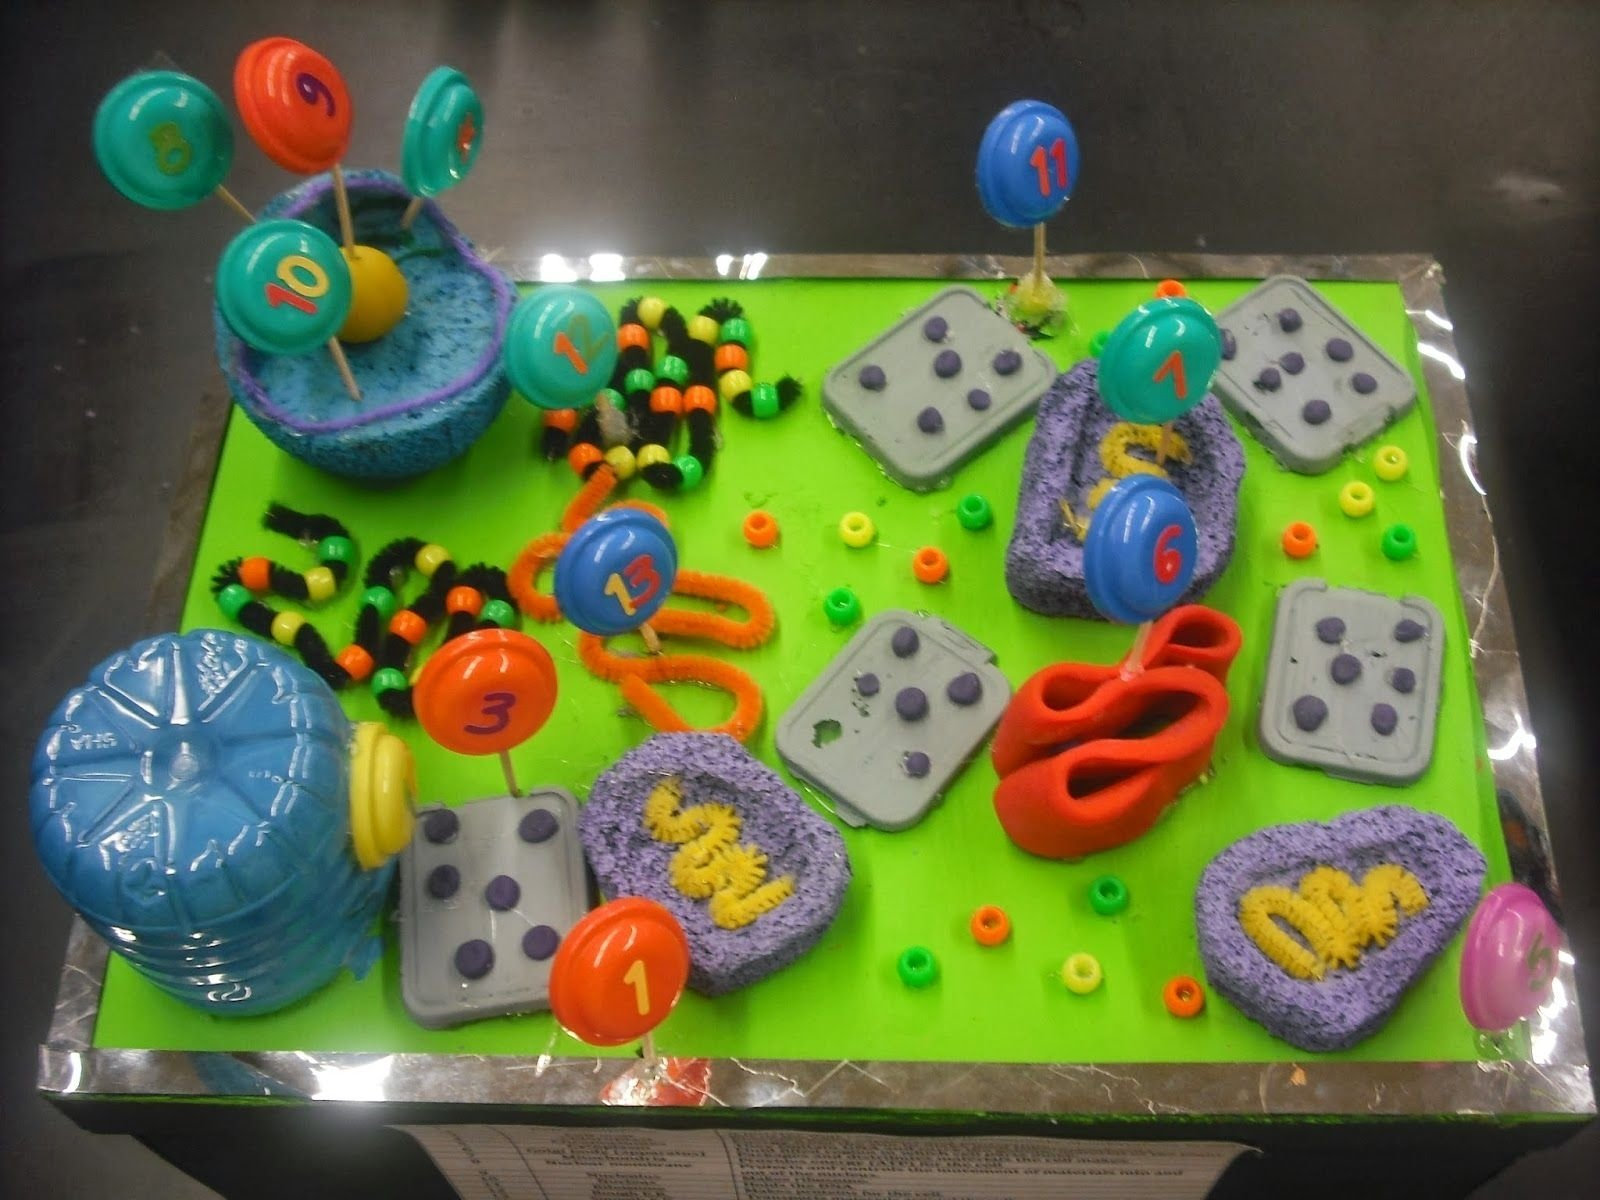 animal and plant cell modelsmr. lalata's 7th/8th grade students